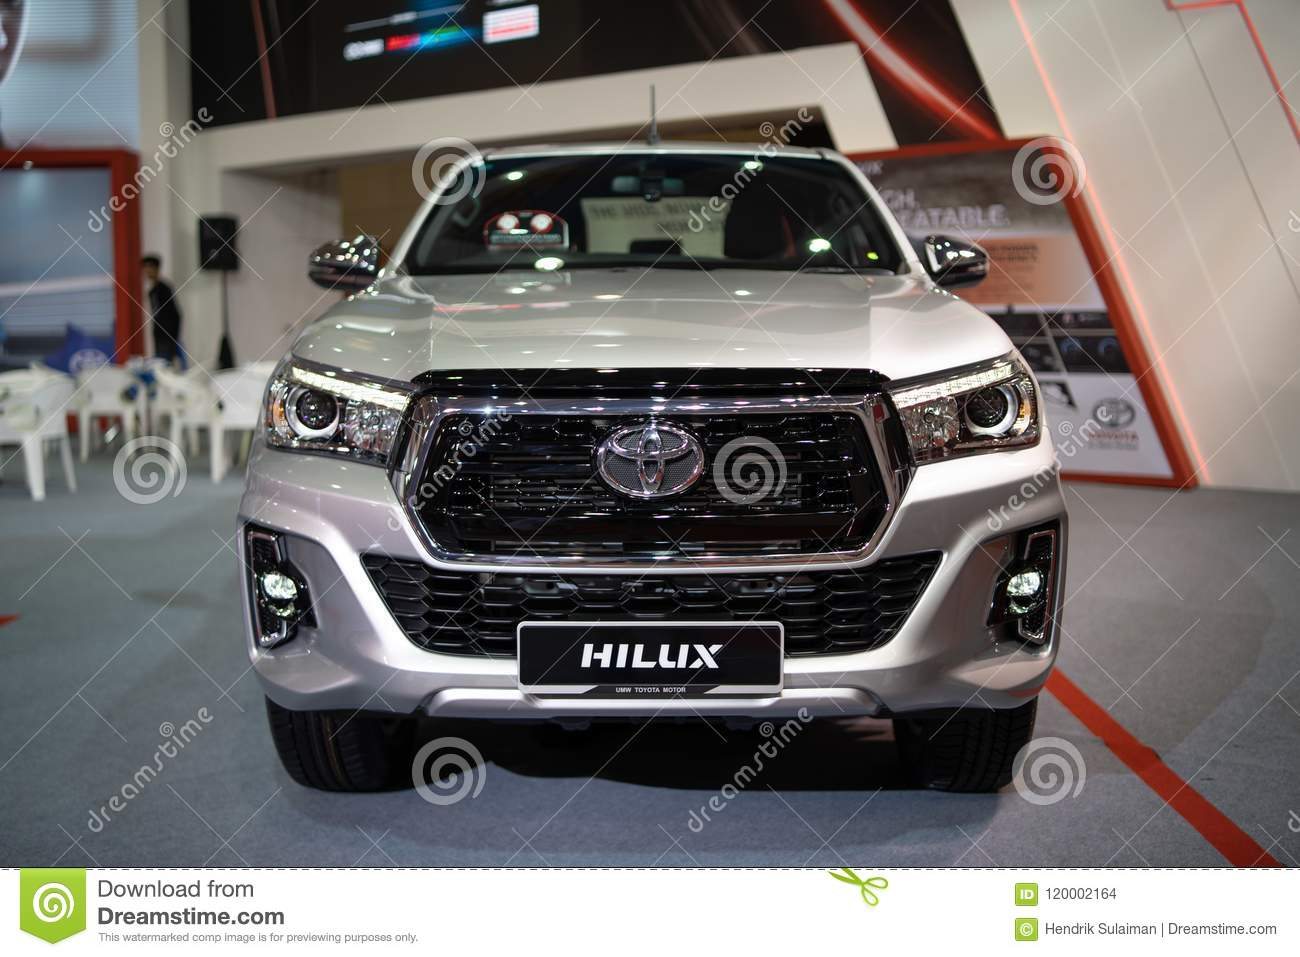 New Toyota Hilux 2018 Editorial Stock Image Image Of Toyota 120002164